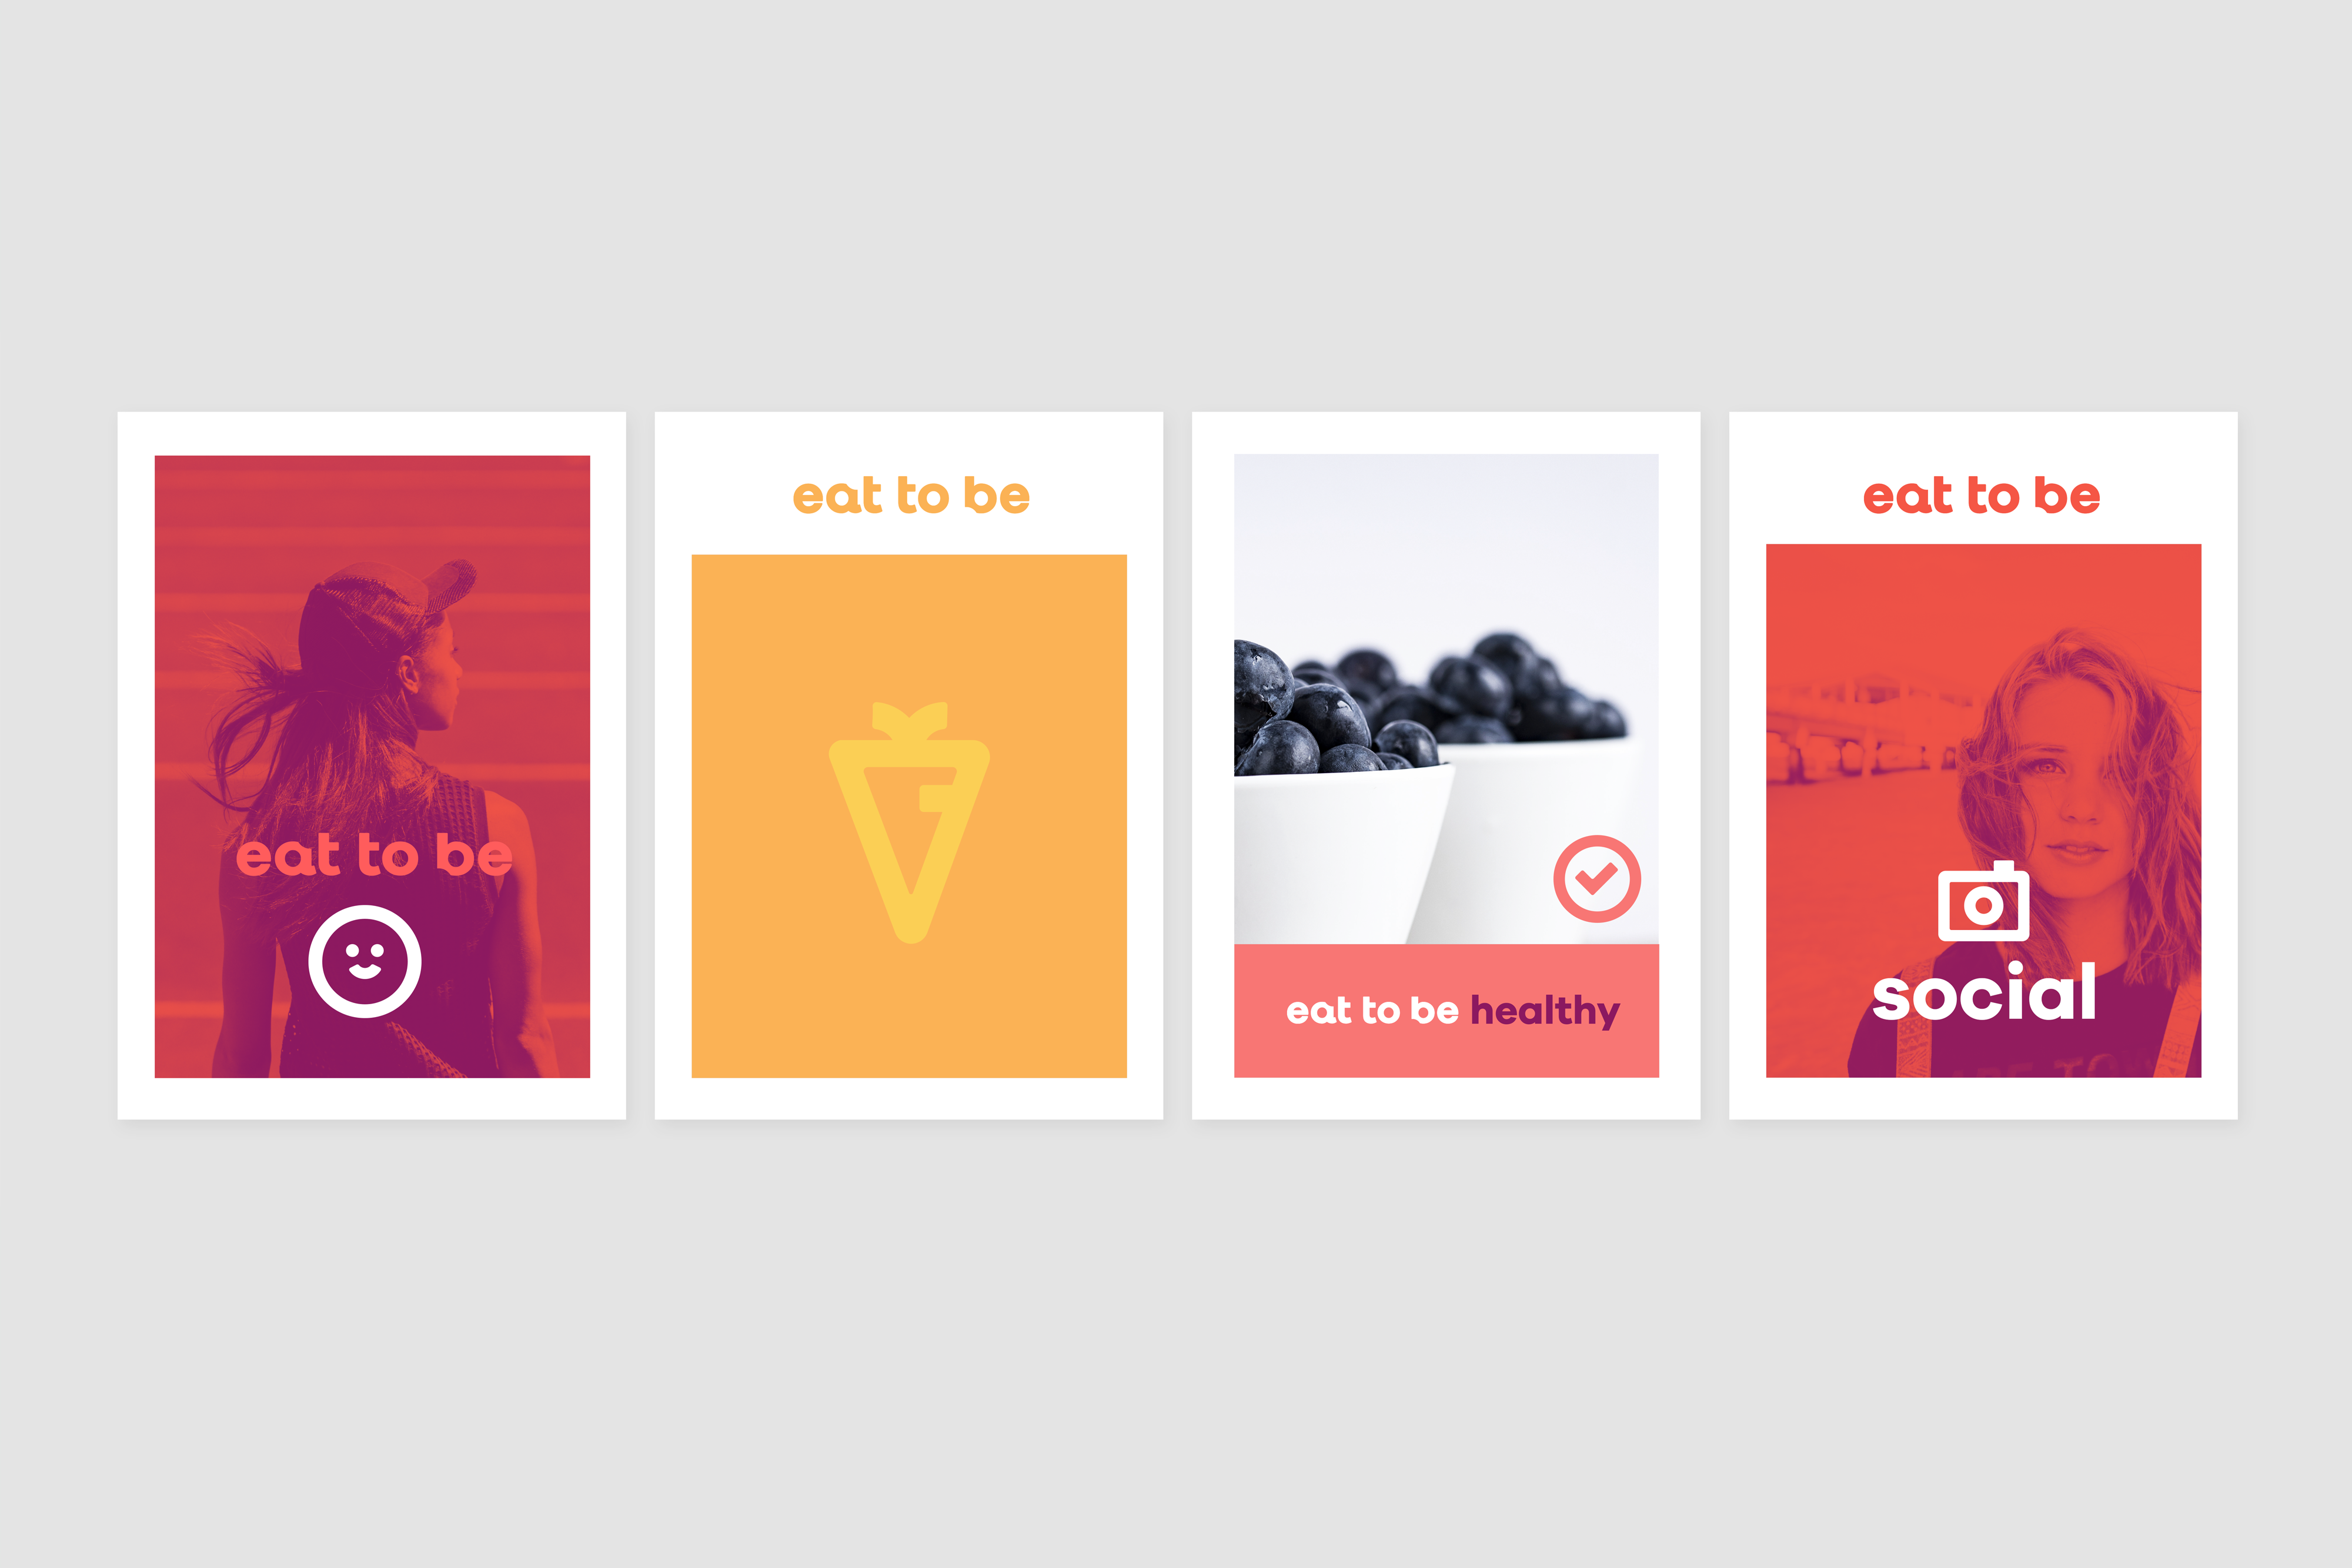 Eat to be Branding by The Woork Co